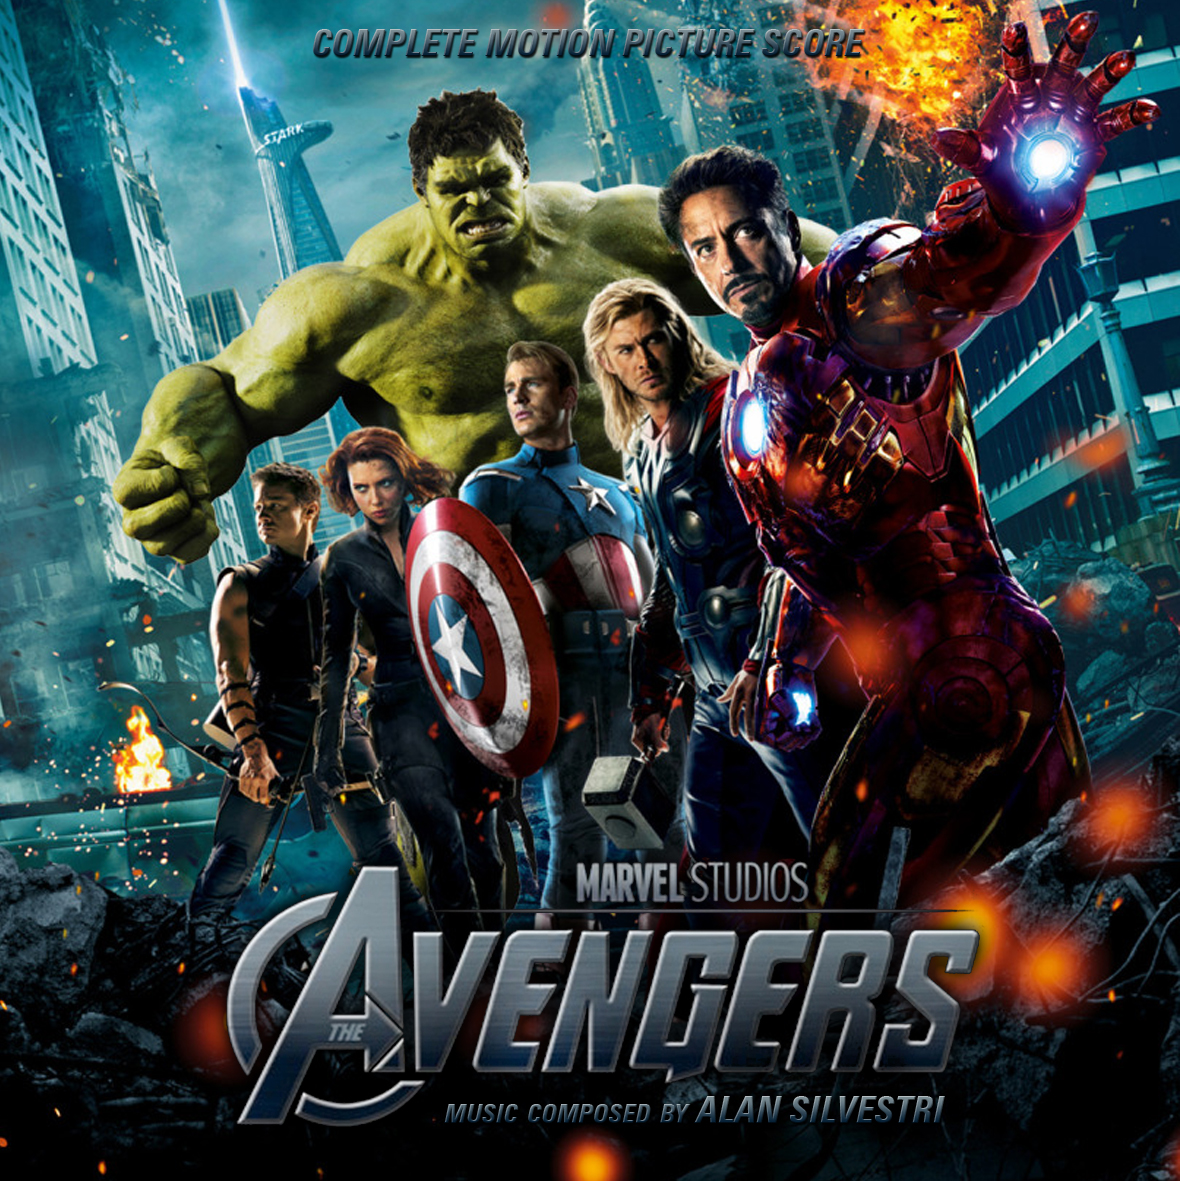 Soundtrack List Covers: The Avengers Complete (Alan Silvestri)